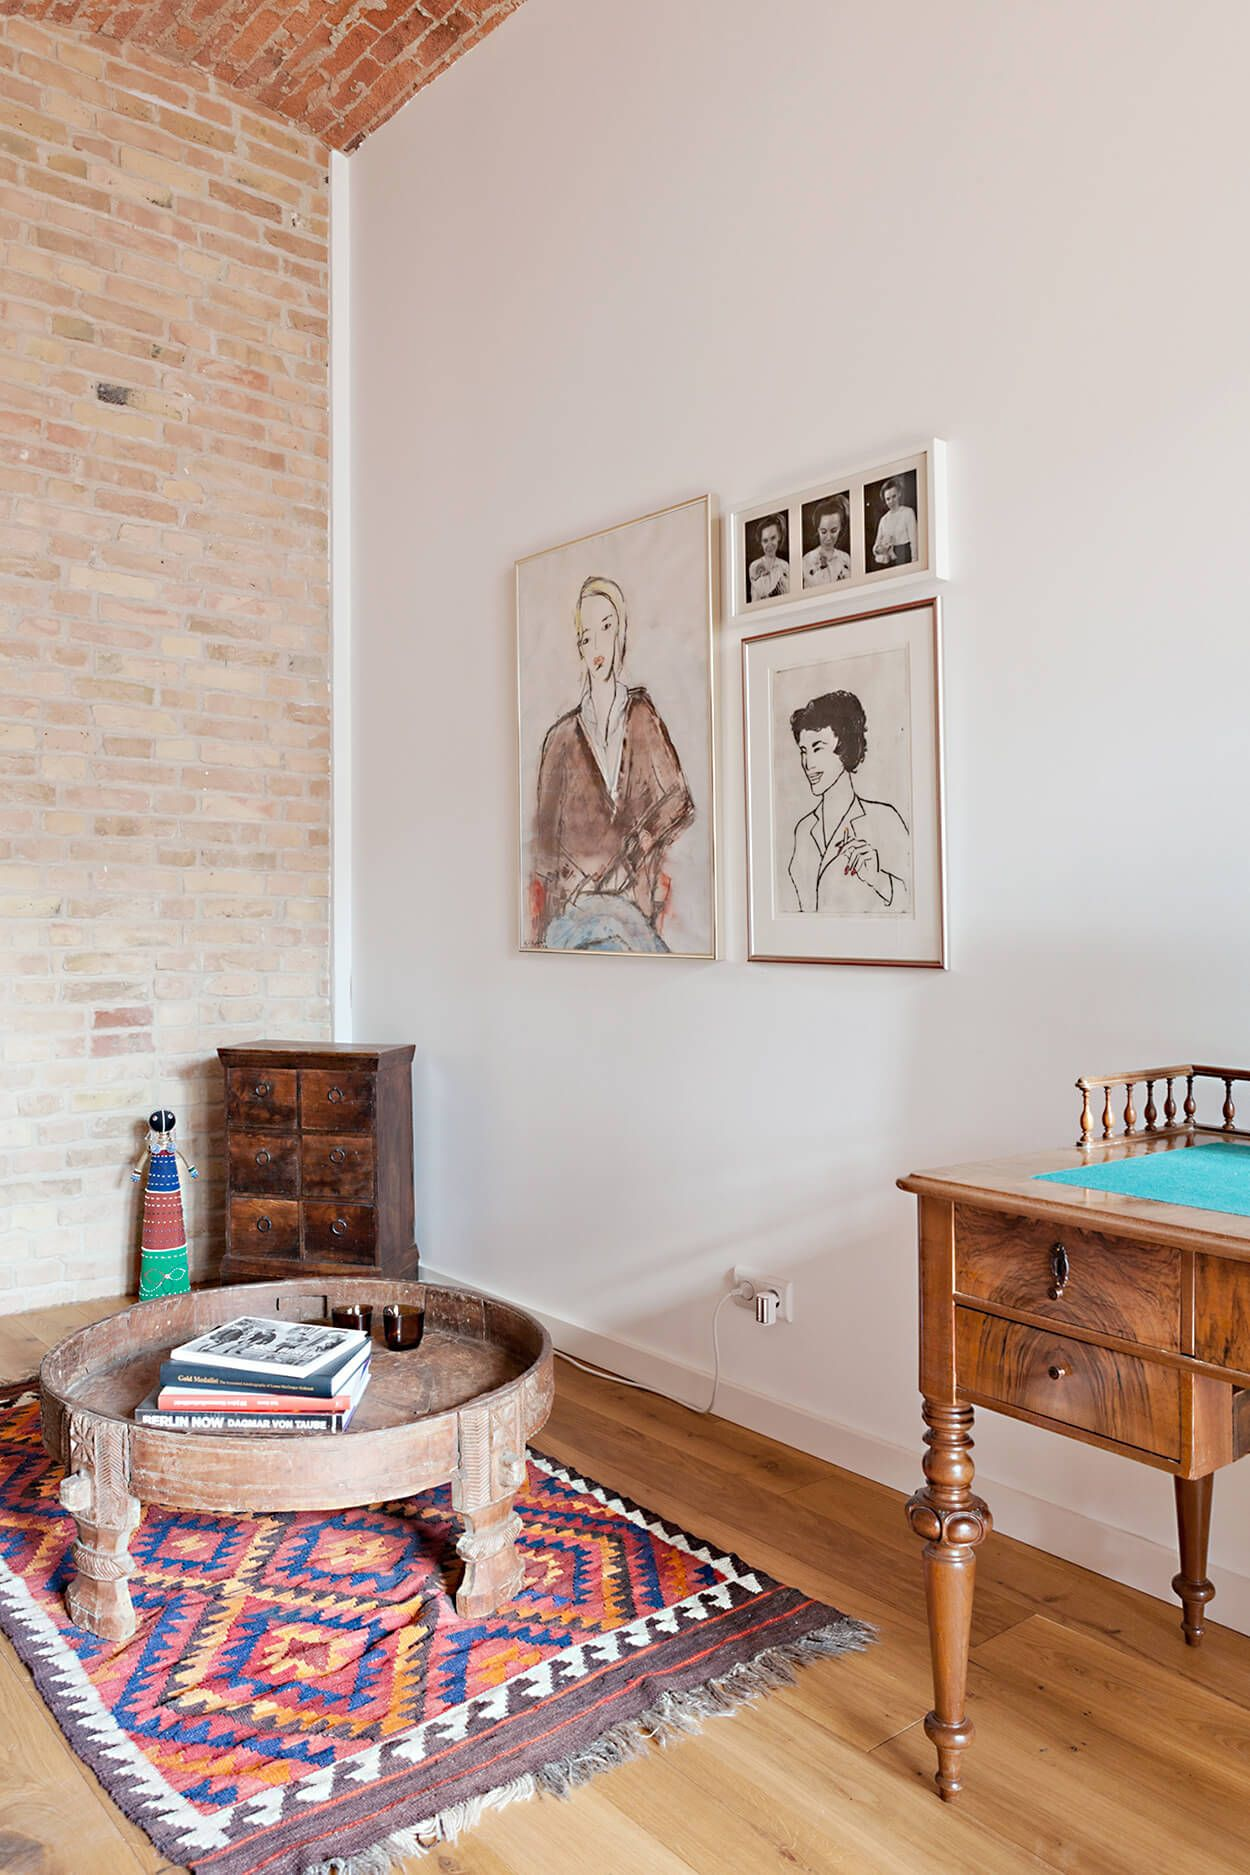 How to decorate with exposed brick walls bricks decorating and walls